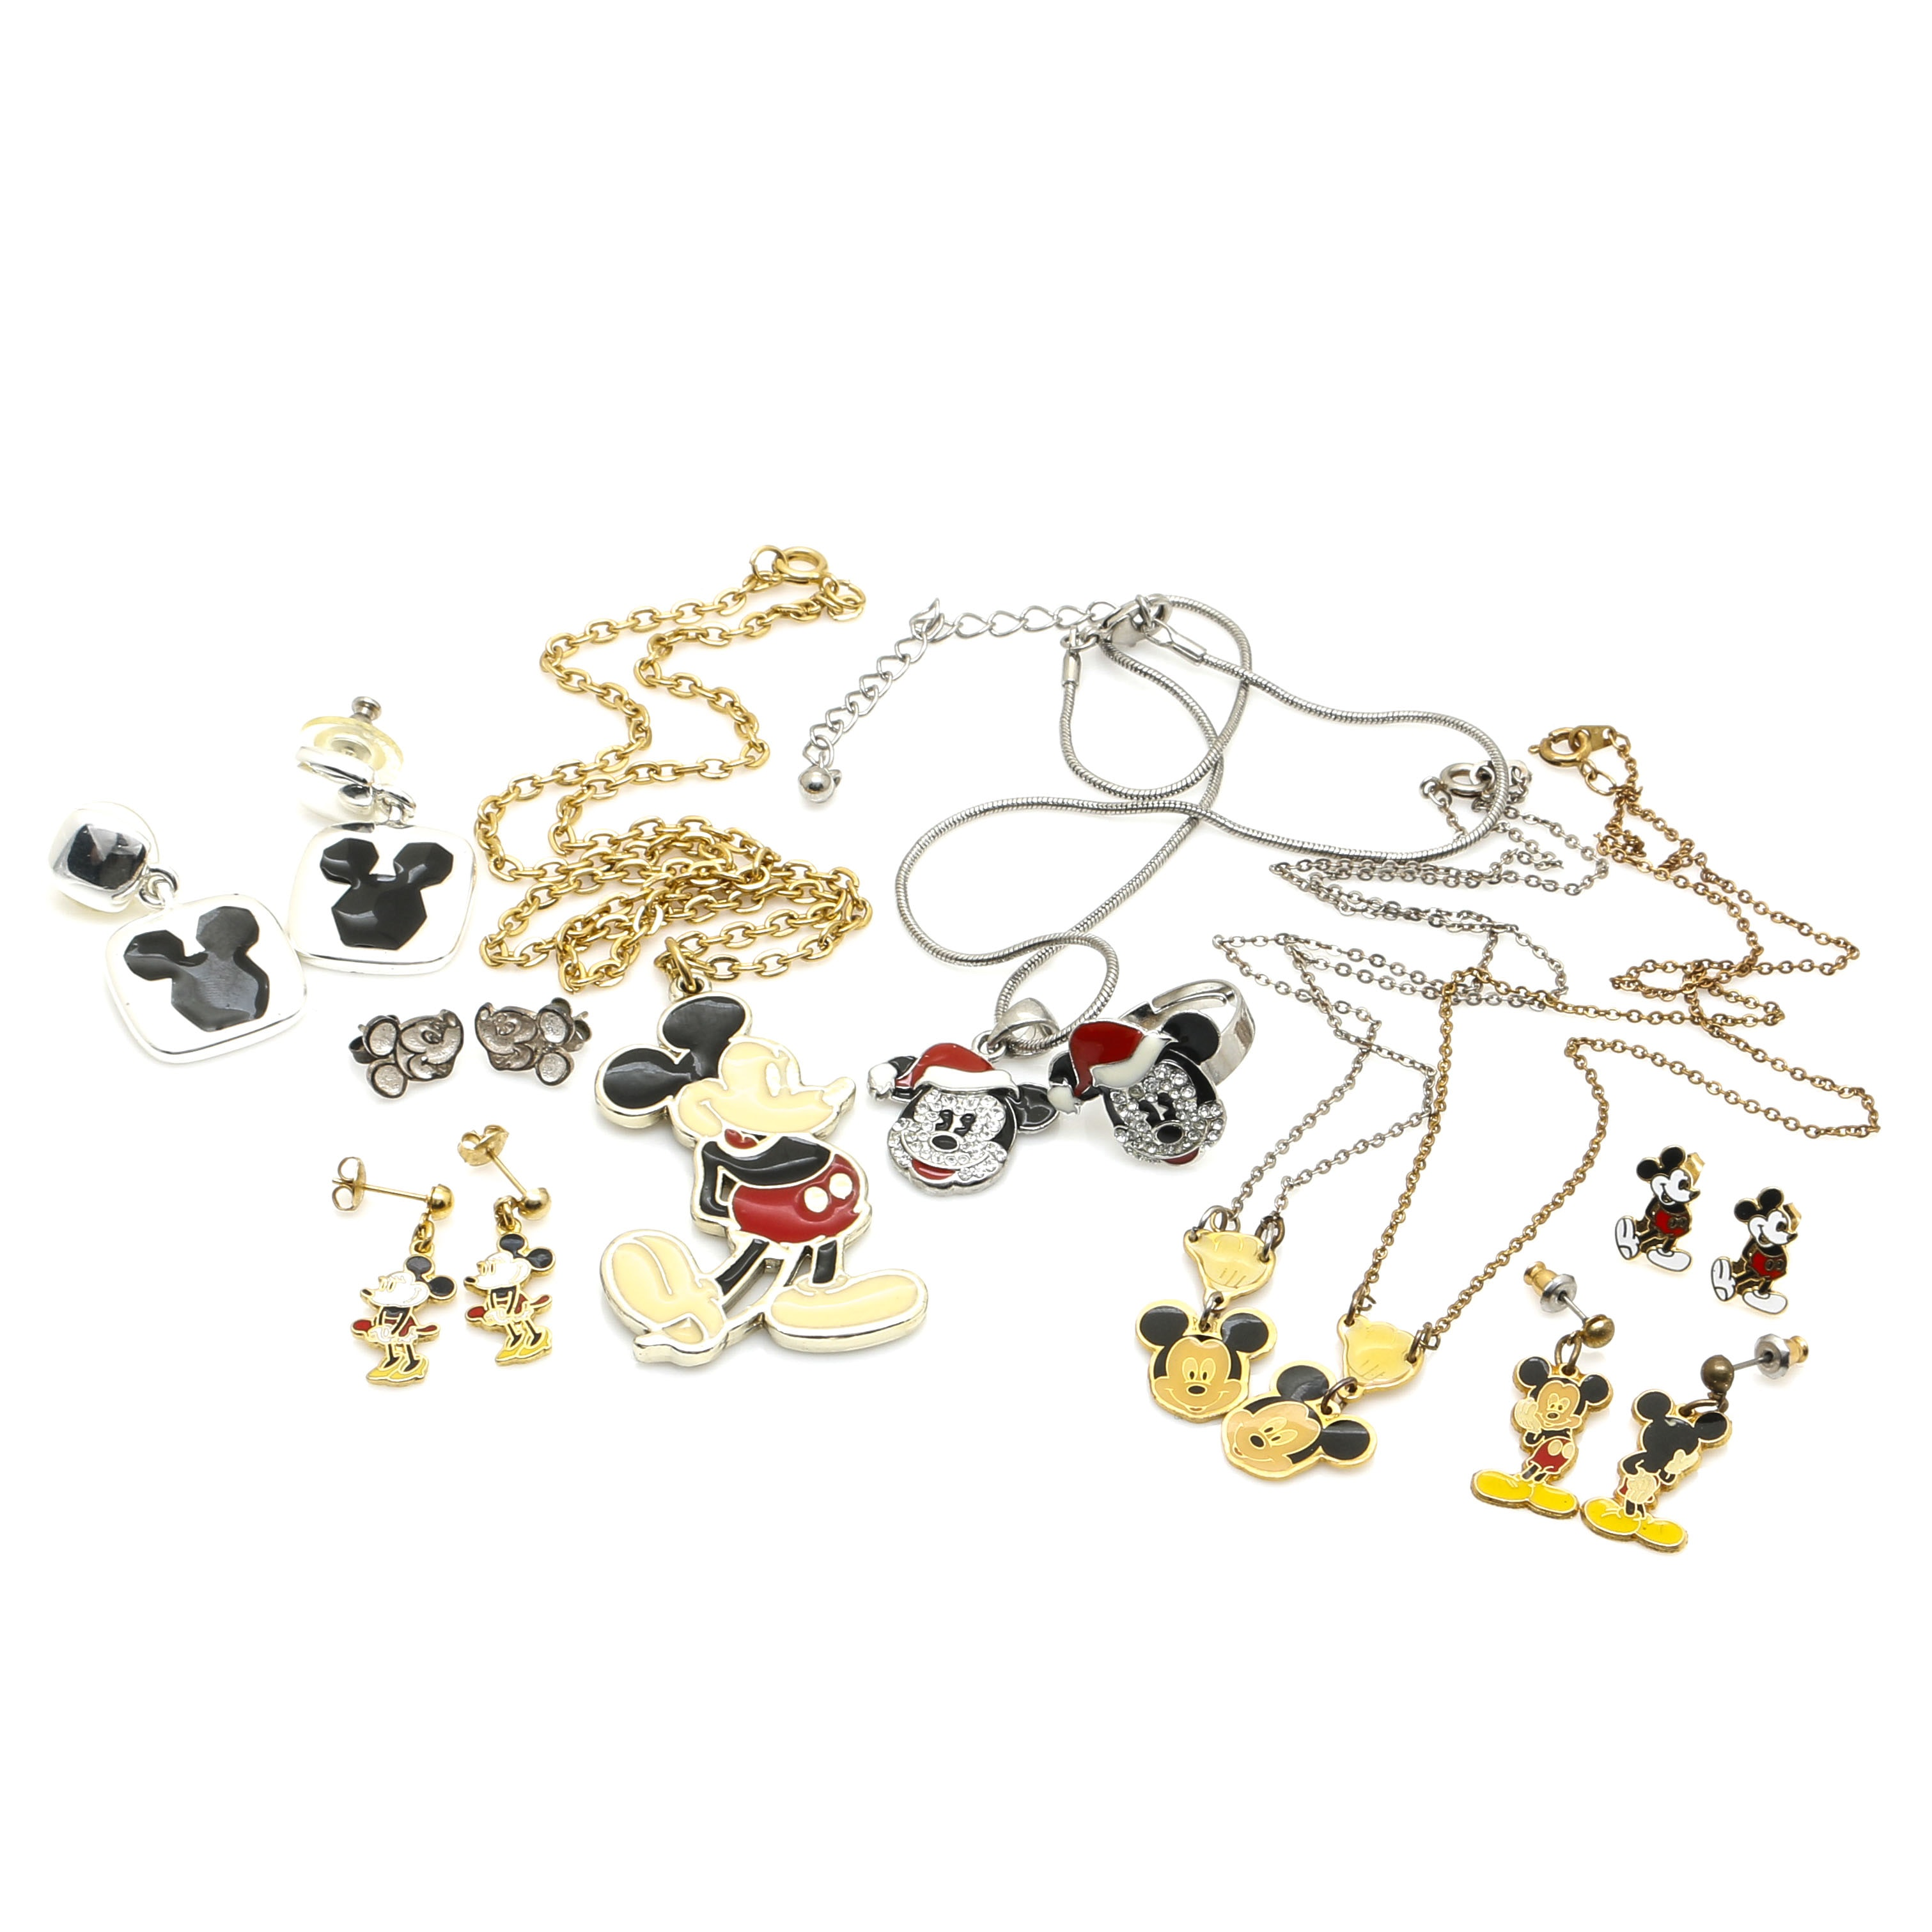 Mickey and Minnie Mouse Jewelry With Rhinestones and Enameling